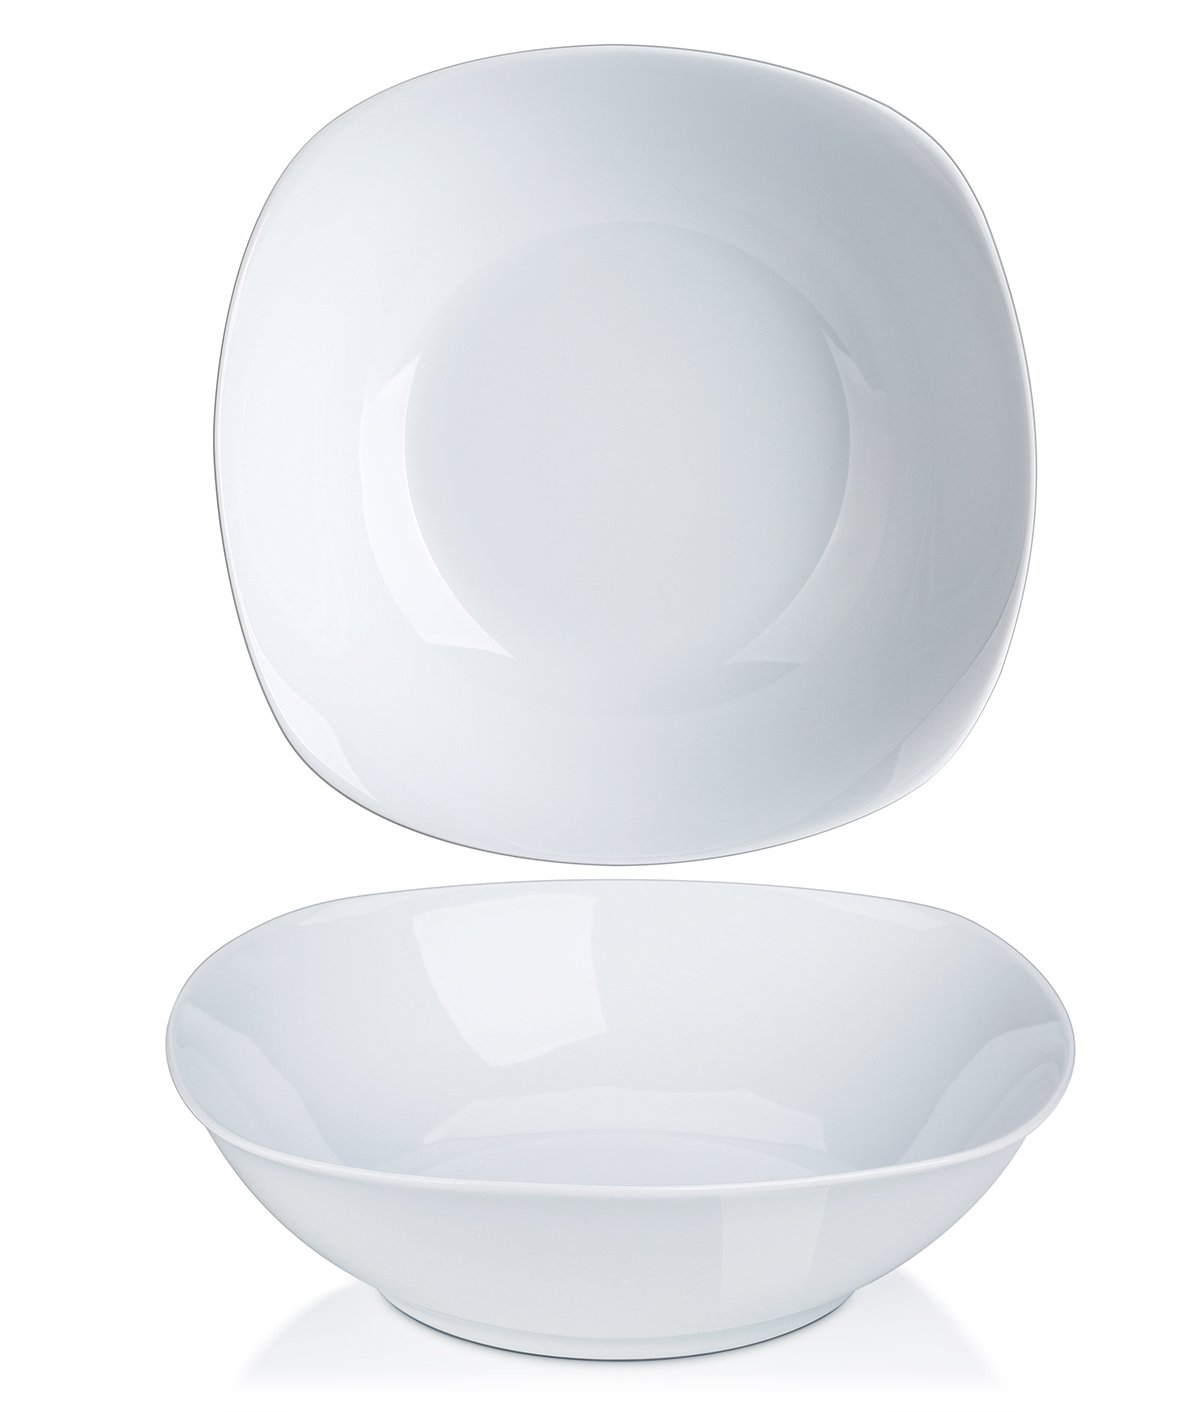 YHY 1.3-Quart Porcelain Salad Serving Bowls, Square Soup/Cereal Bowl Set, White, Set of 2